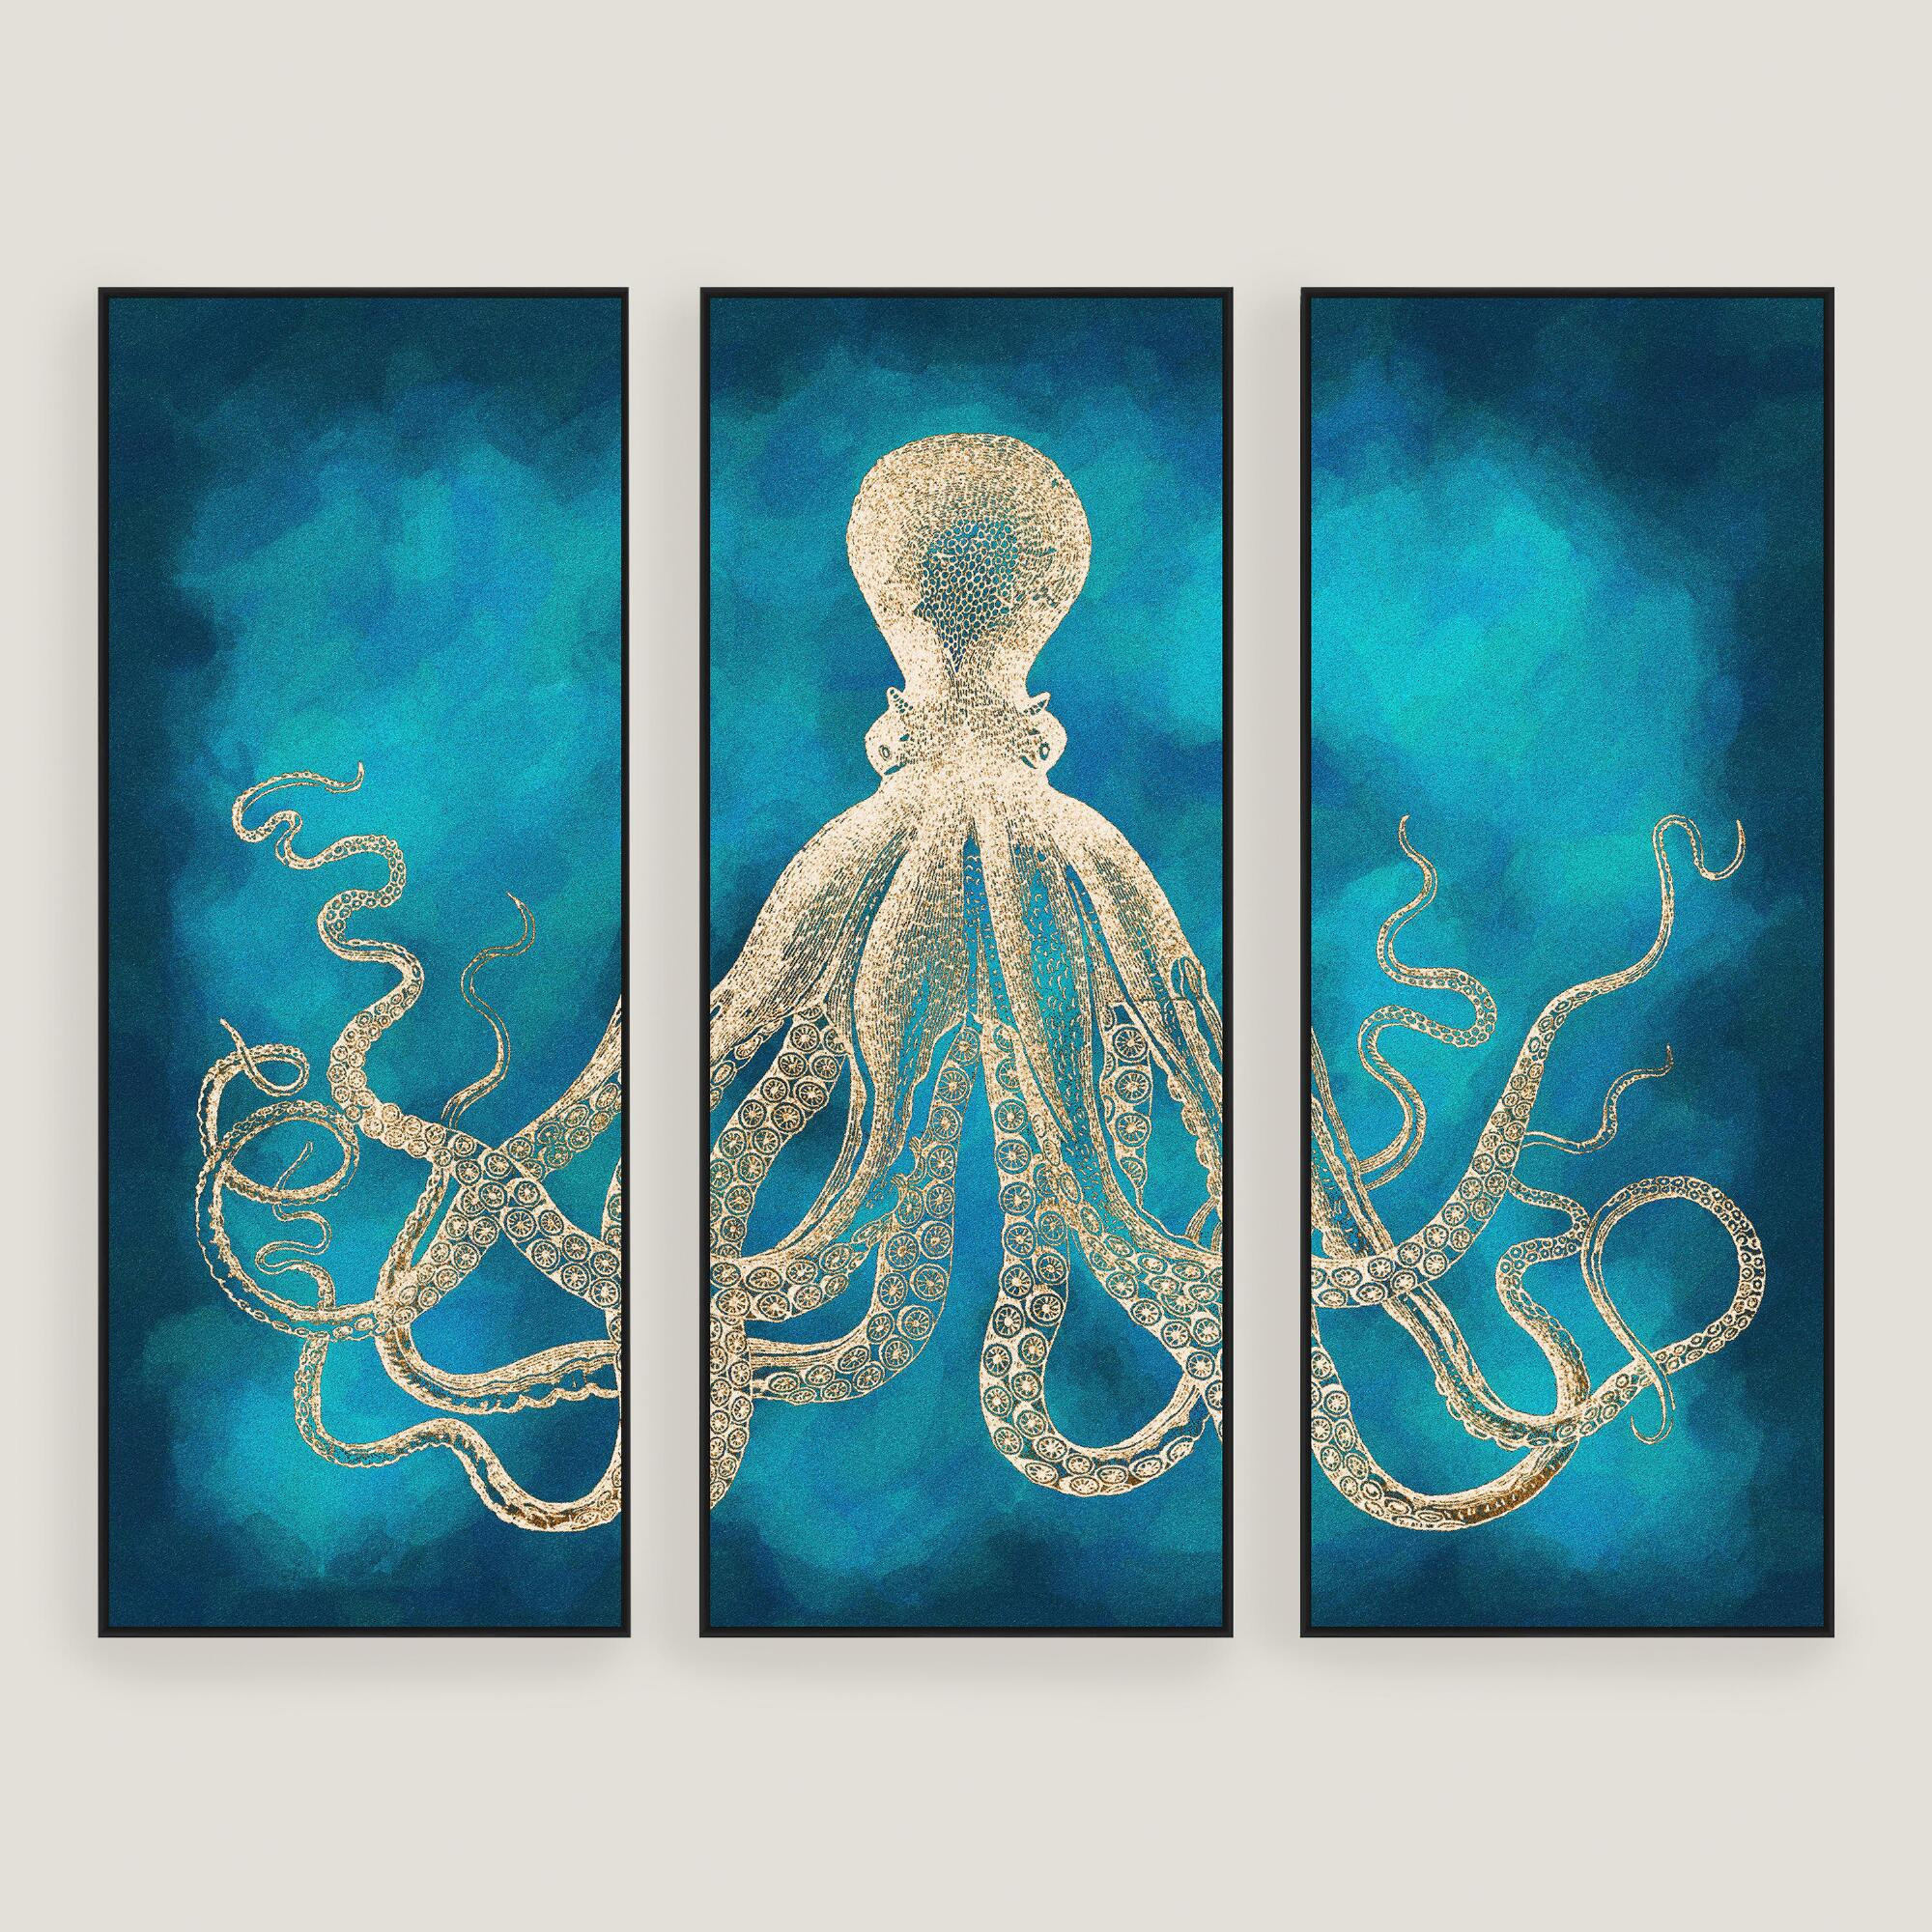 Best ideas about Octopus Wall Art . Save or Pin Octopus Sea Life Wall Art 3 Piece Now.